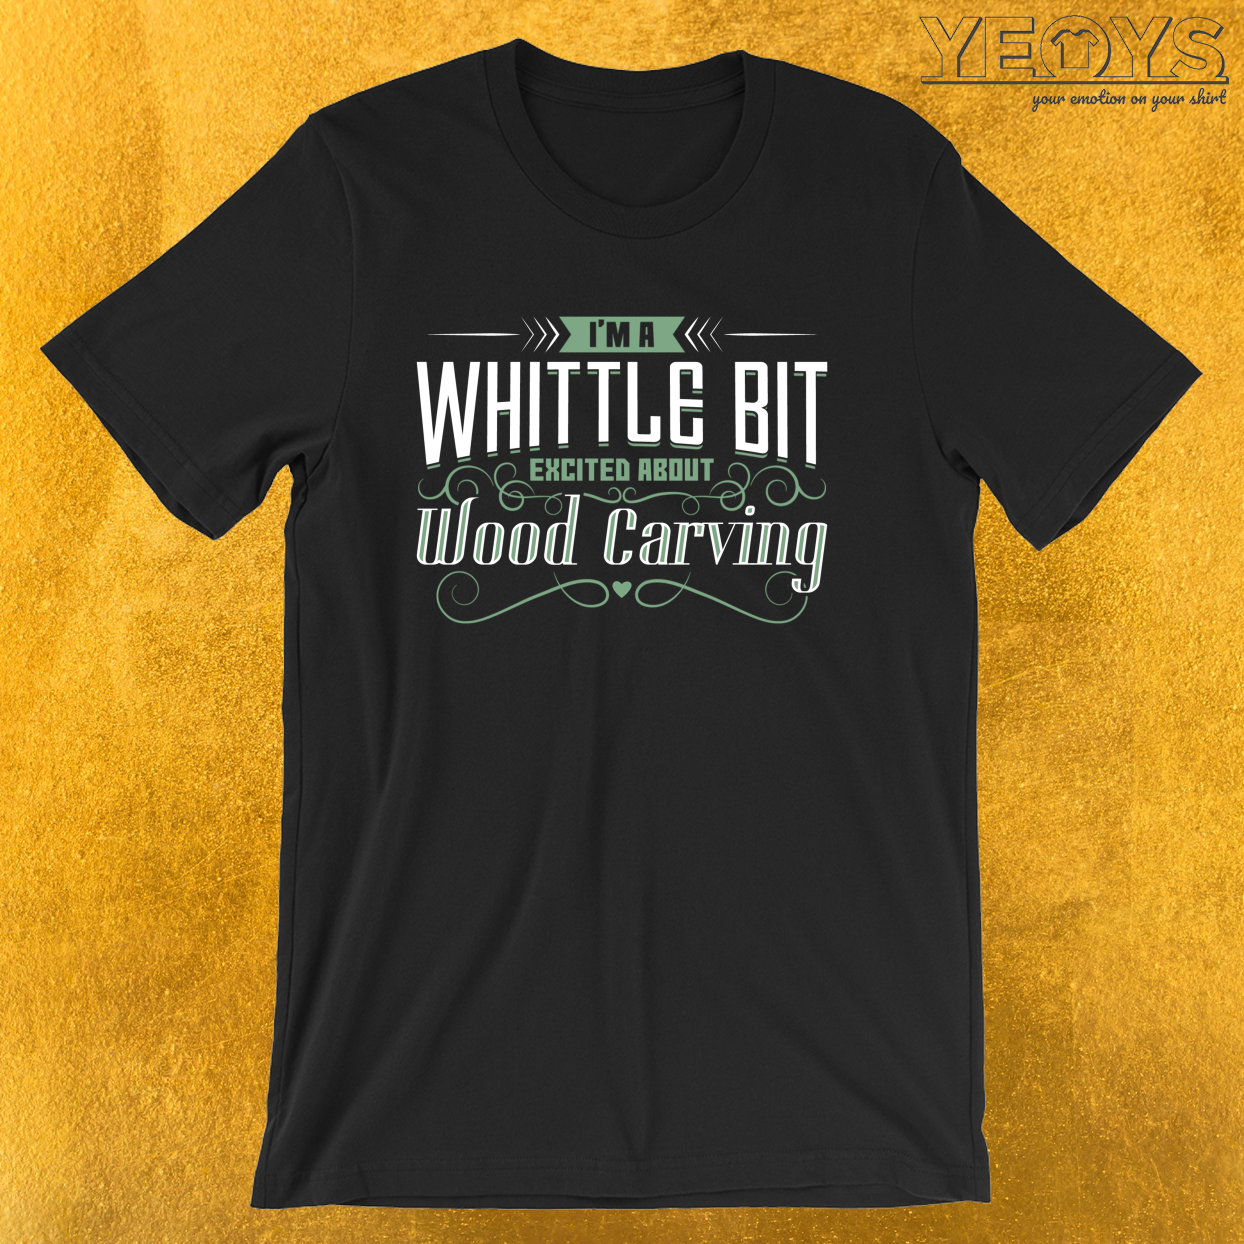 I'm A Whittle Bit Excited About Wood Carving – Whittle Wood Tee